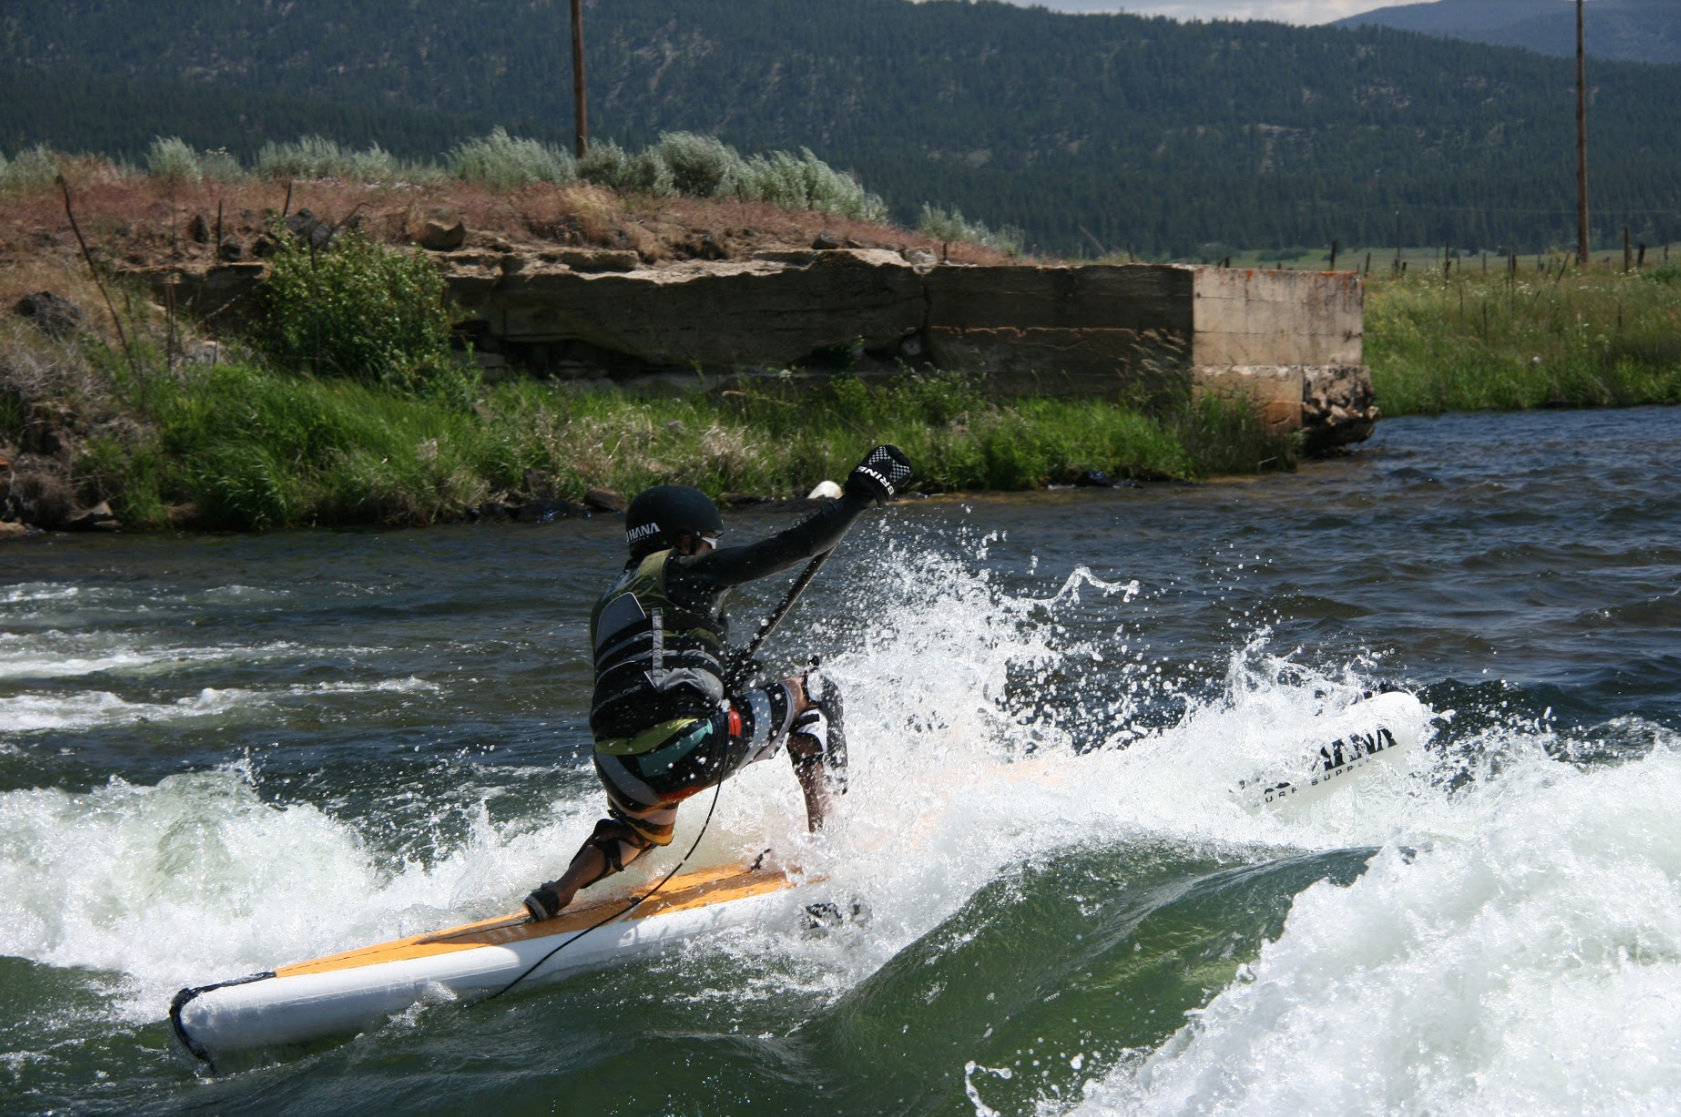 Paddling a Big Ez Hawaiian air by Pau Hana surf supply on the river in cascade idaho